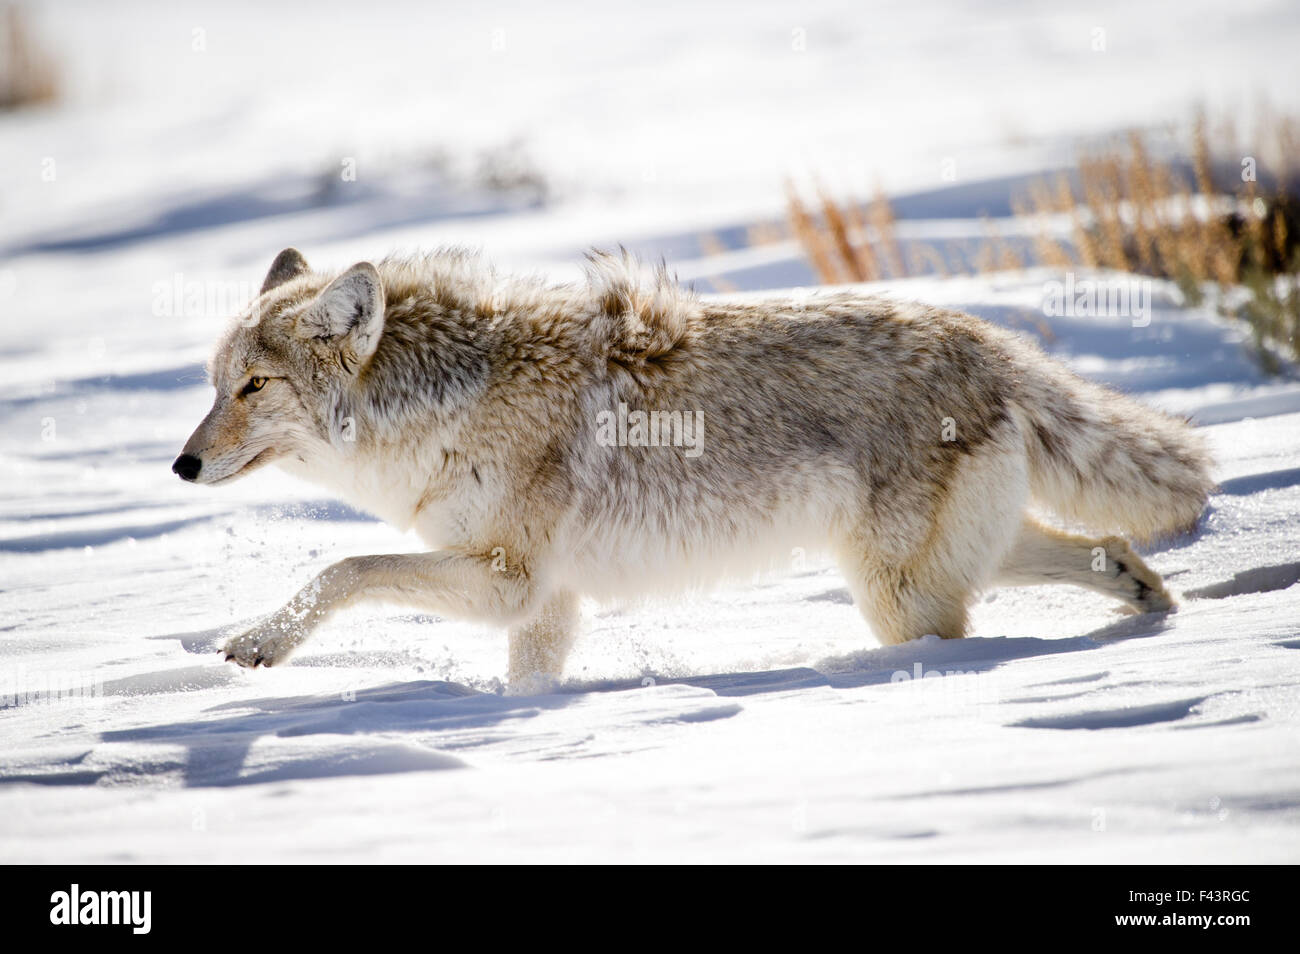 Male Coyote (Canis latrans) walking through deep snow. Hayden Valley, Yellowstone National Park, Wyoming, USA, February. - Stock Image